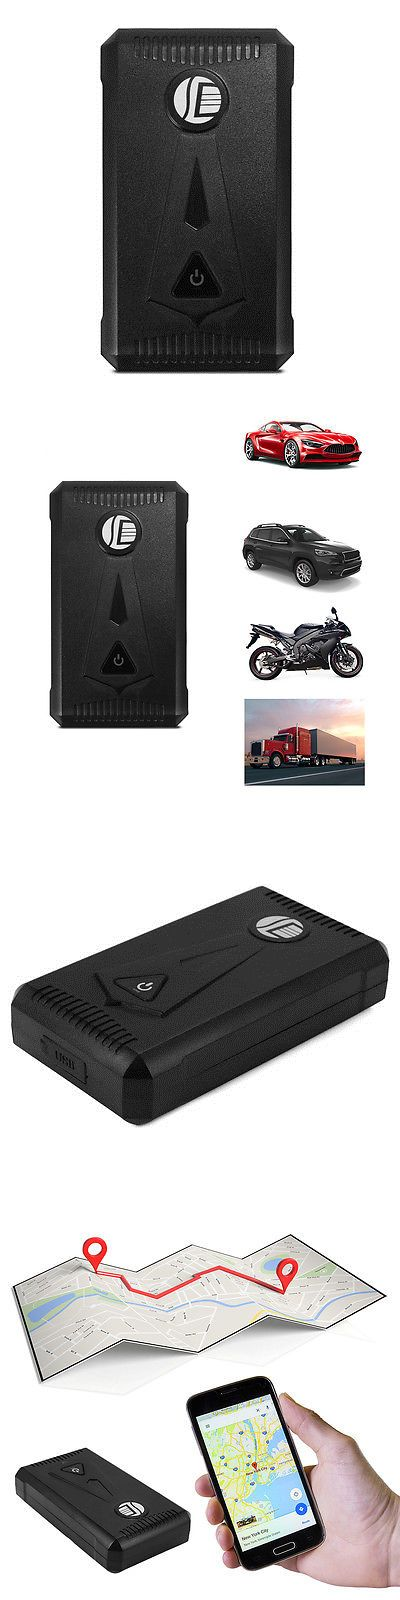 Tracking Devices: Magnetic Gps Tracker Real Time Vehicle Car Tracking Device Gsm Anti-Theft Ah290 -> BUY IT NOW ONLY: $43.59 on eBay!